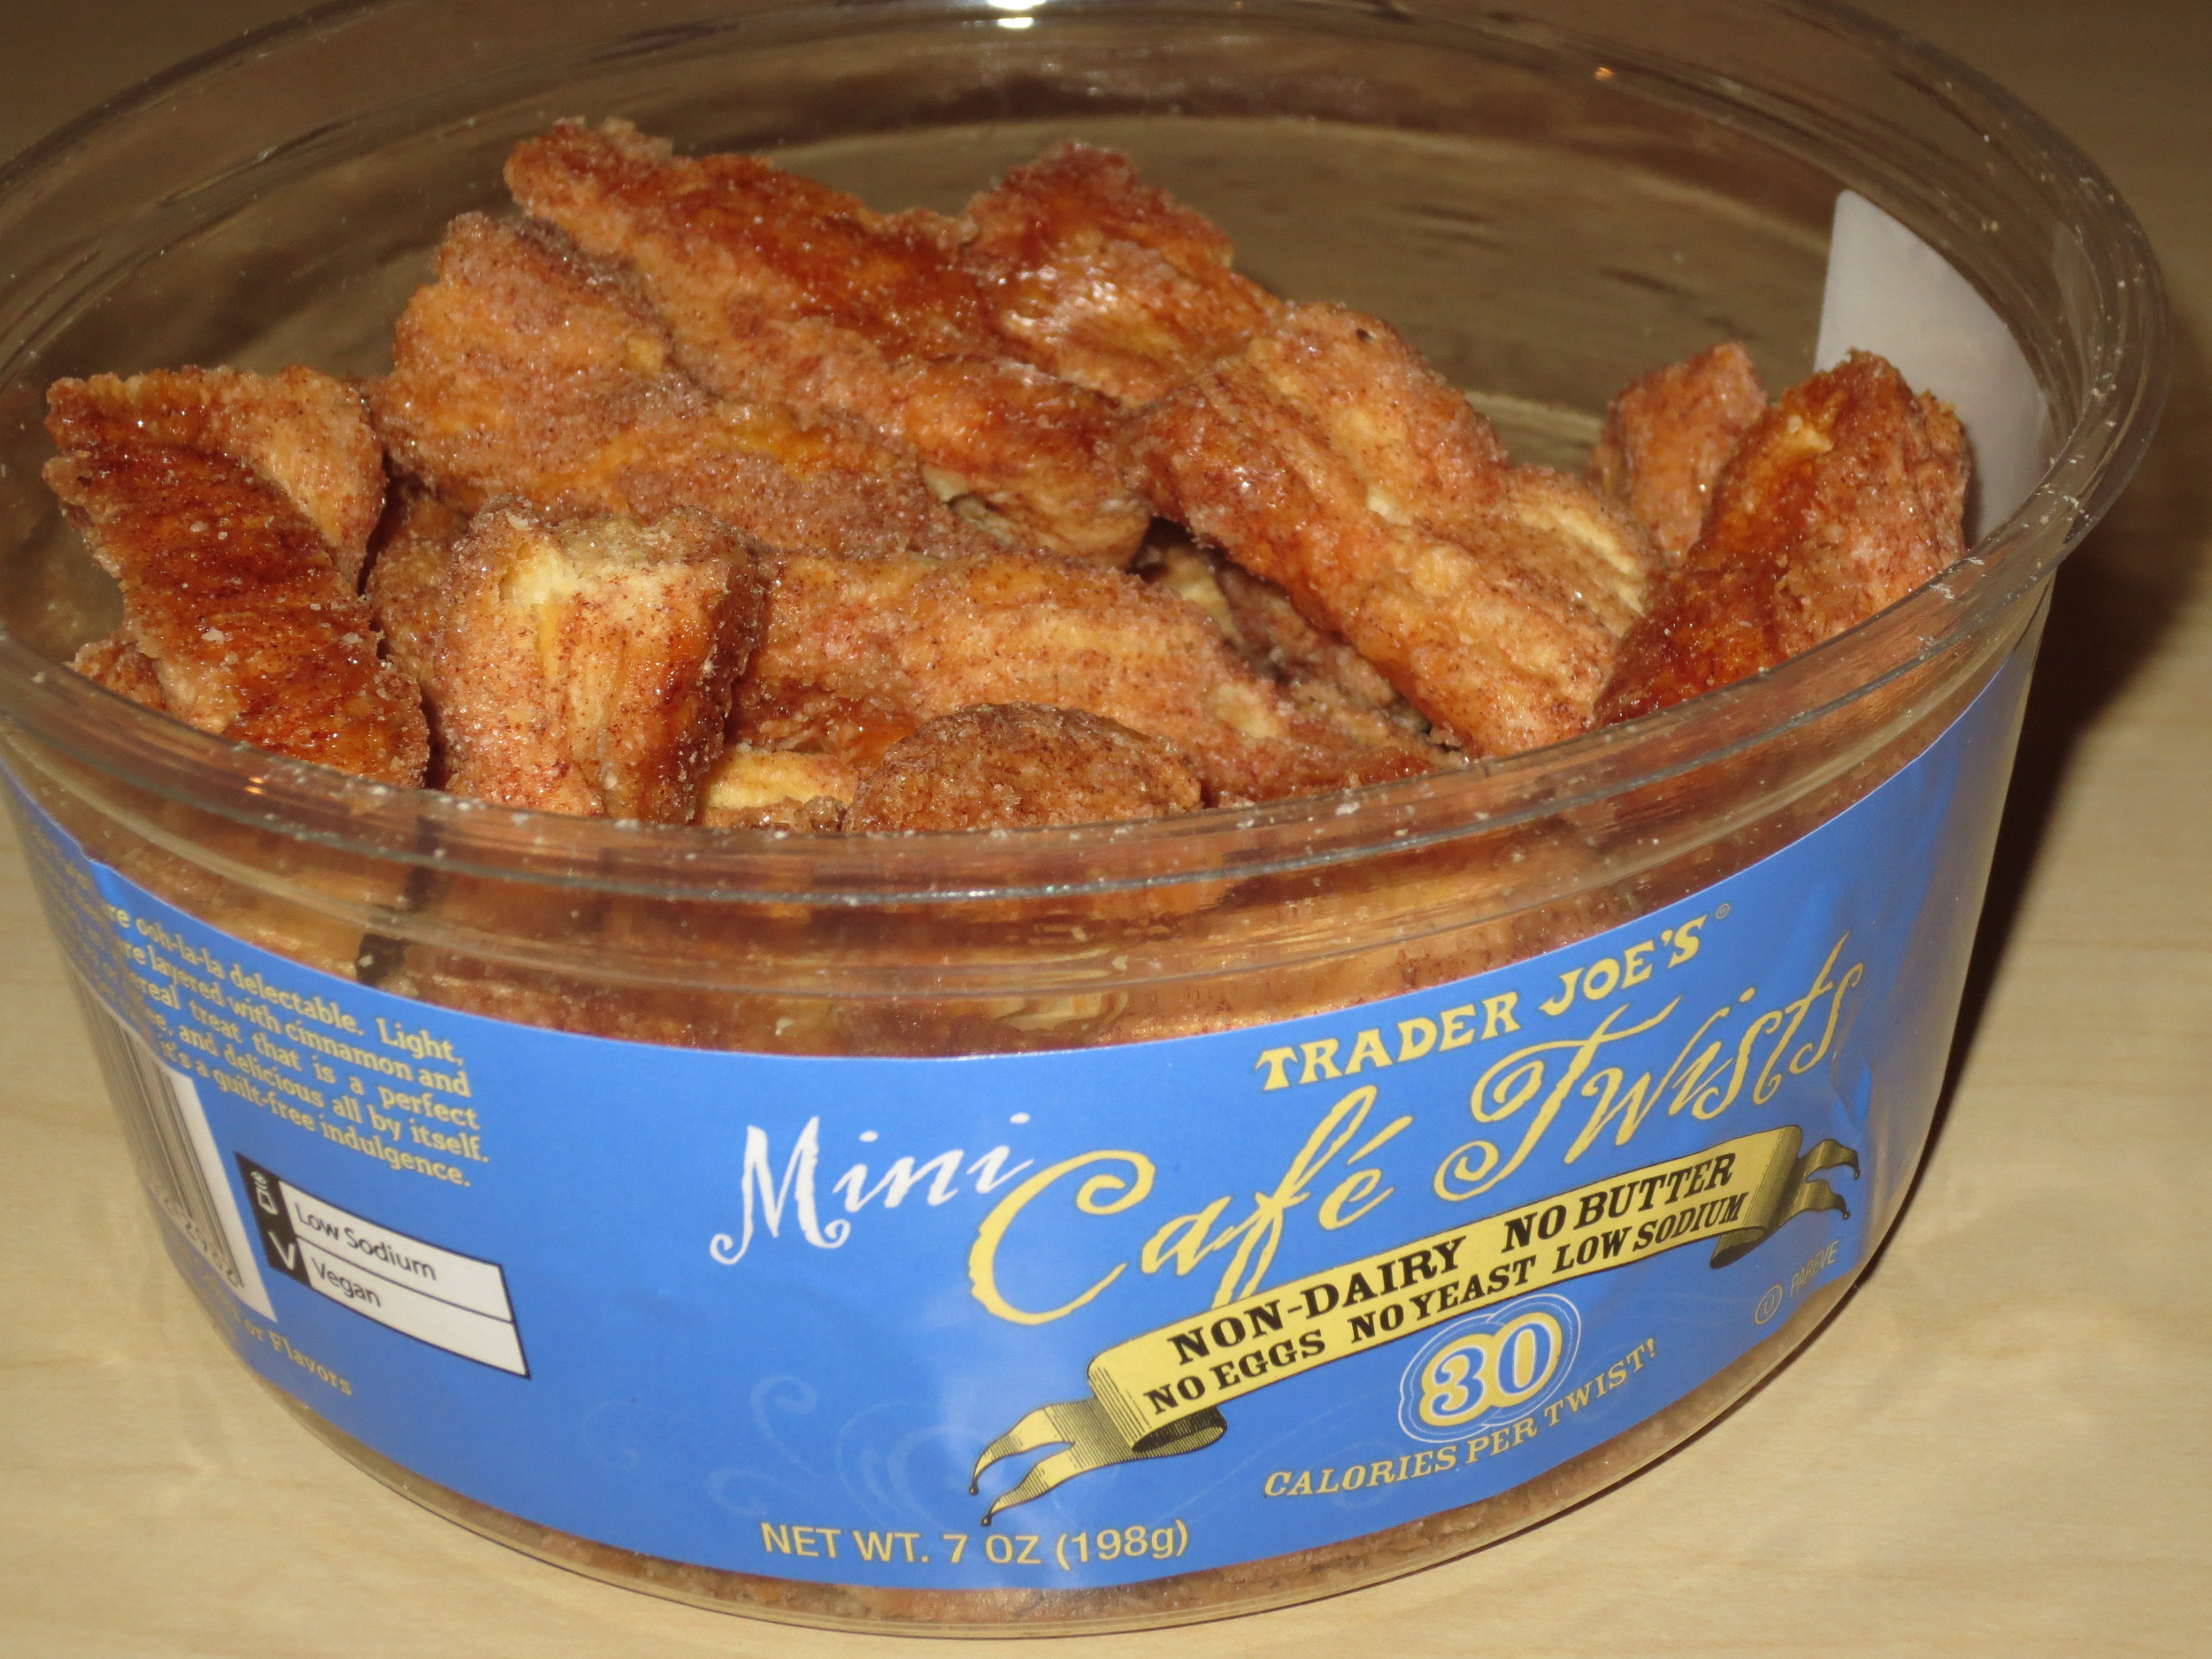 Mini Cinnamon Cafe Twists: $2.29 per 7 oz. tub (as of Nov 2013)  **shout out to my friend Tracey for telling me about these! :)